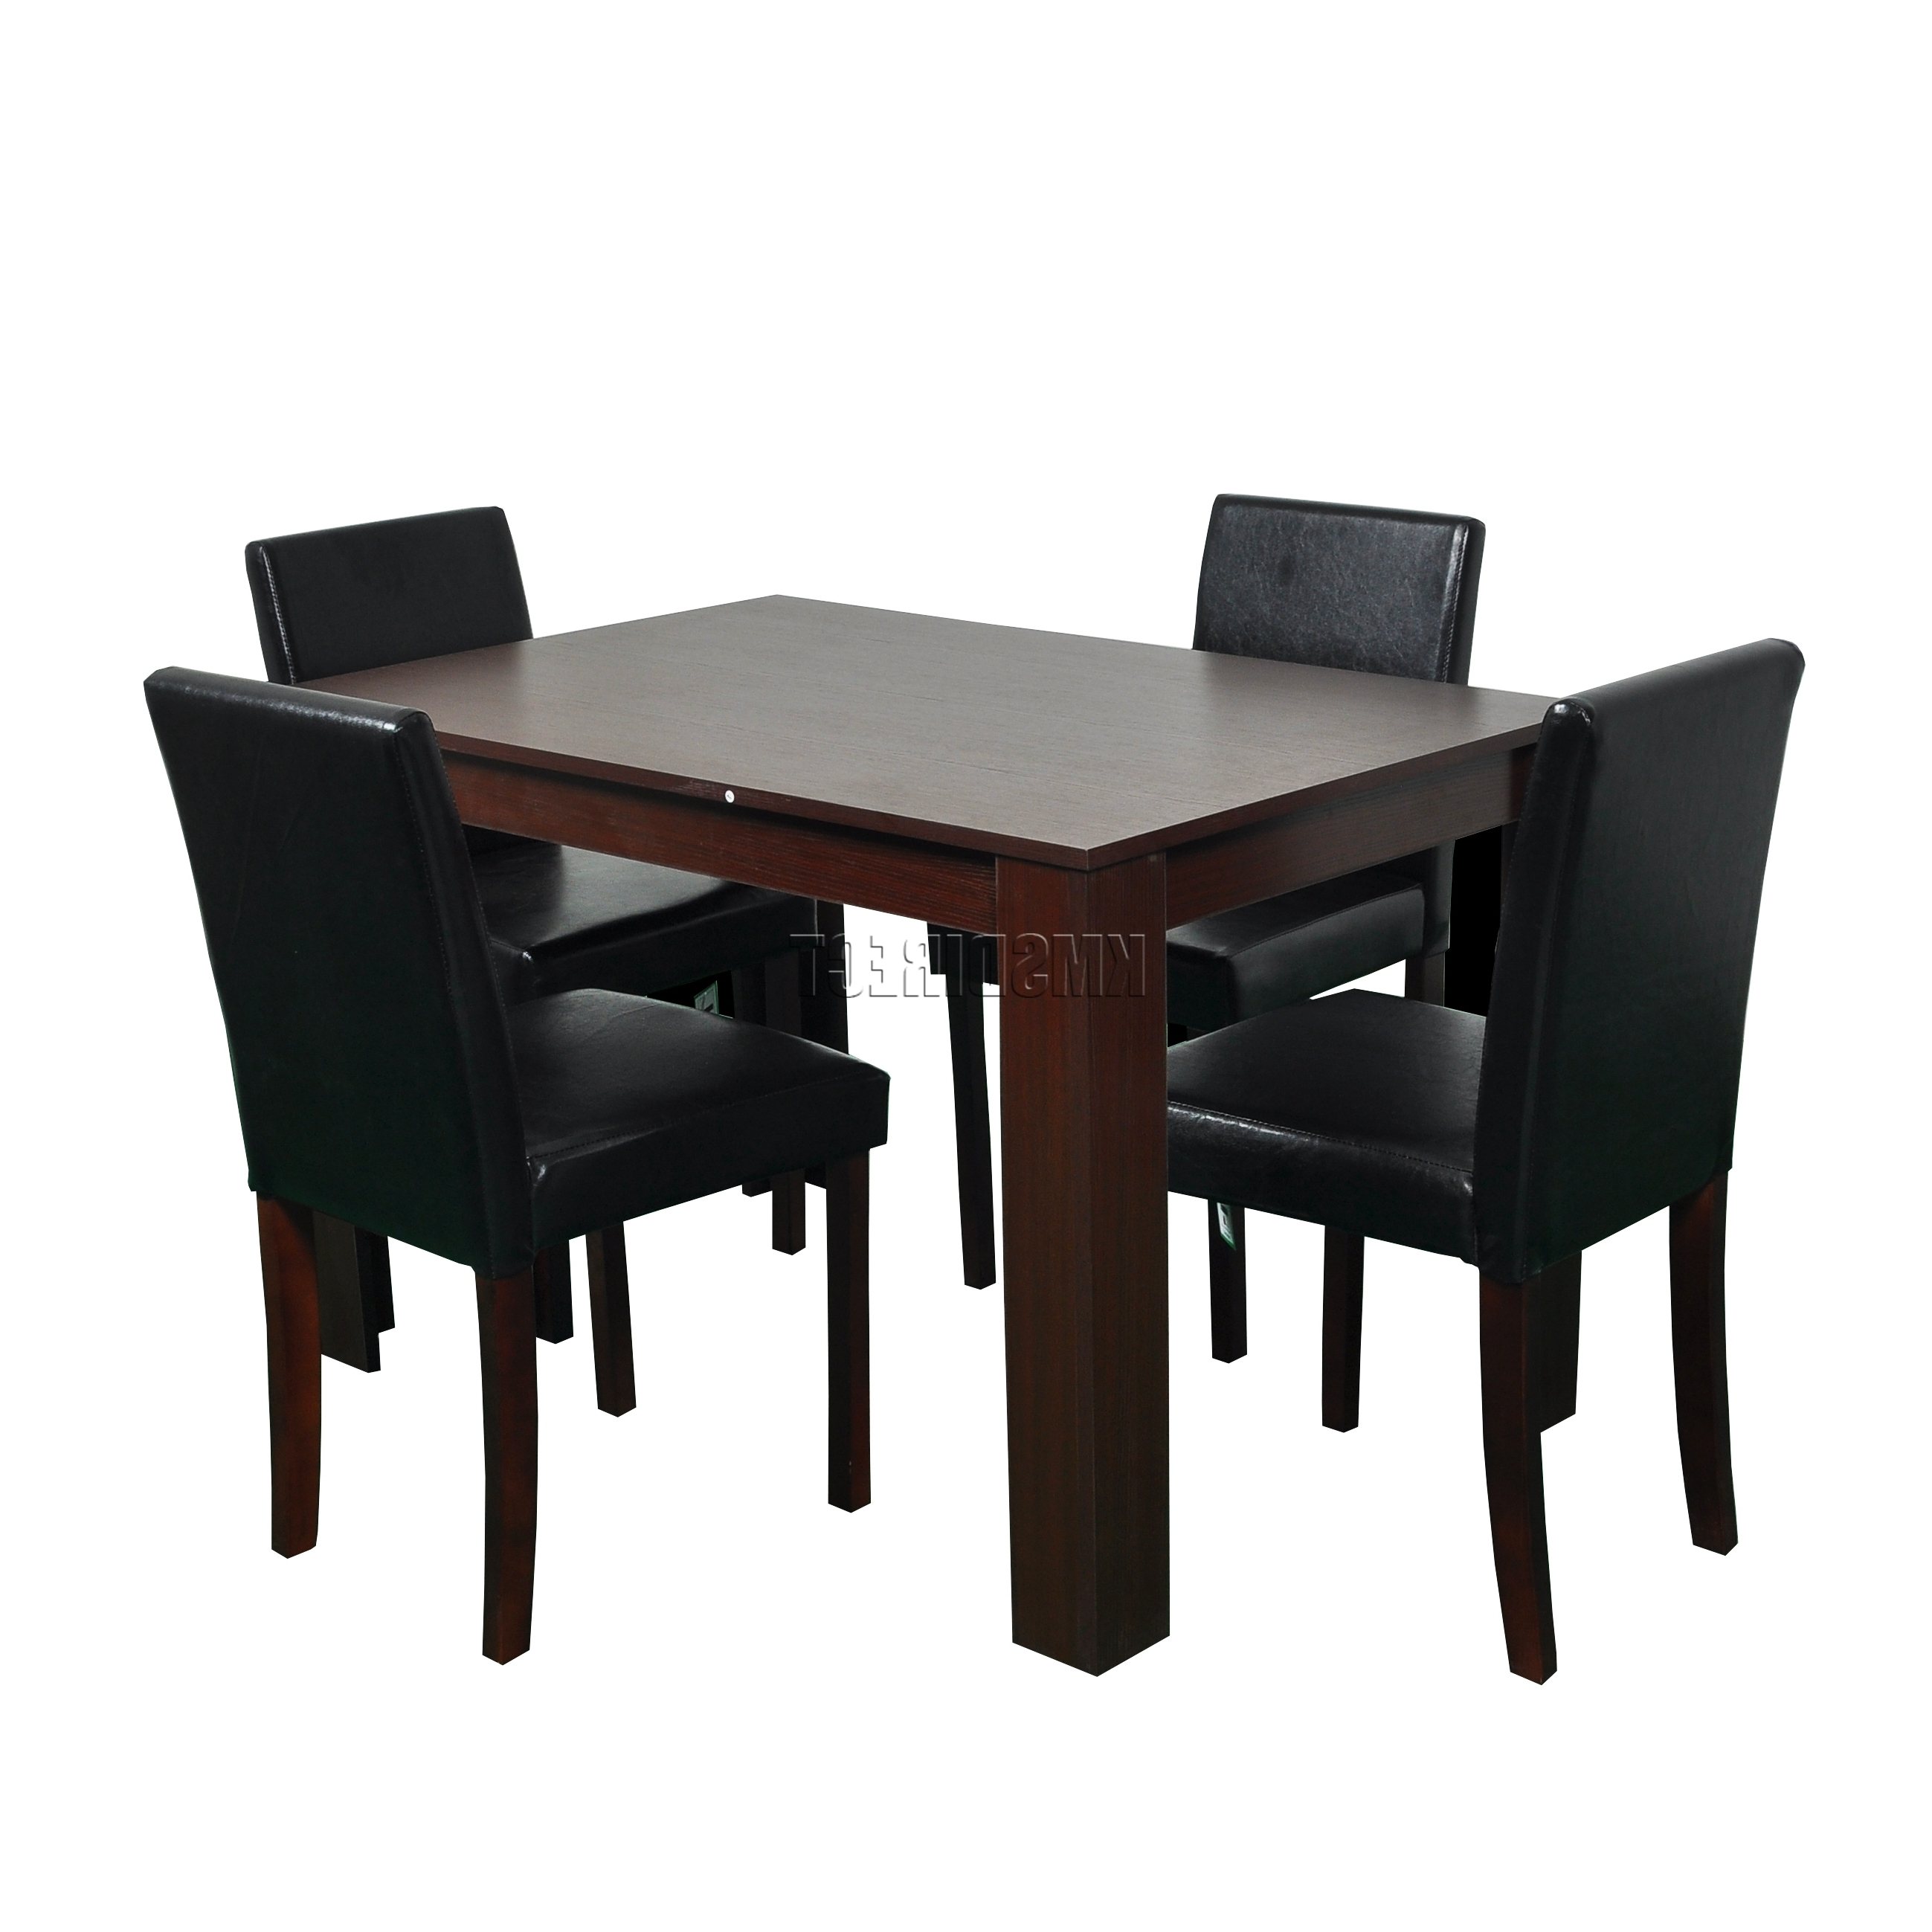 Spare Repair Wooden Dining Table X 4 Pu Faux Leather Chairs Set Throughout Most Popular Wooden Dining Sets (View 6 of 25)